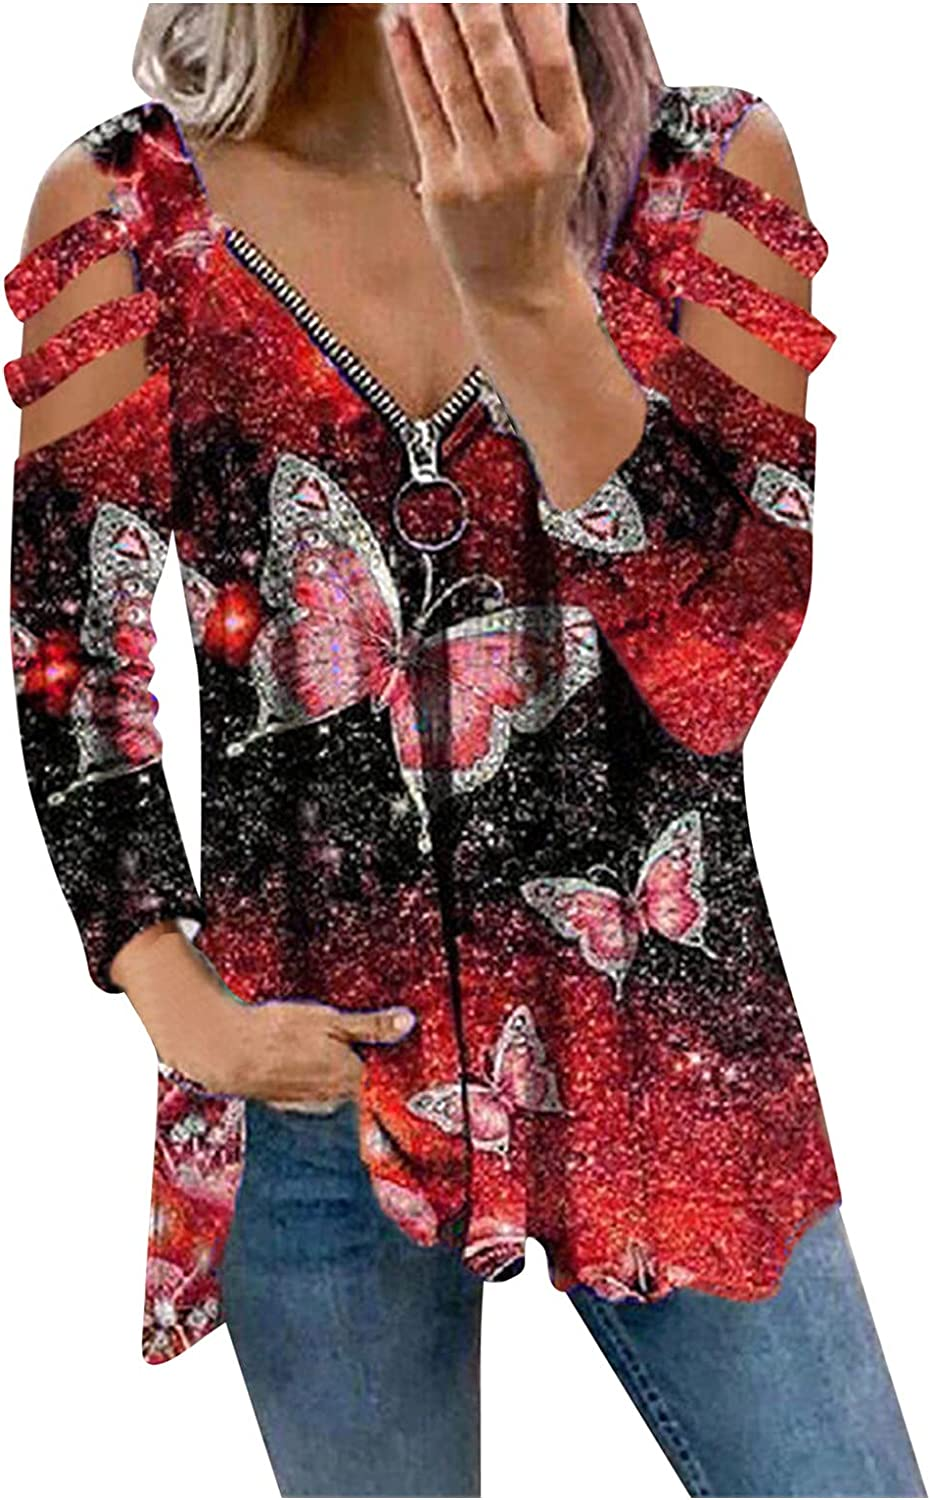 POTO Long Sleeve Shirts Sale special price for Women T Louisville-Jefferson County Mall V-Neck Zipper Shirt Printed